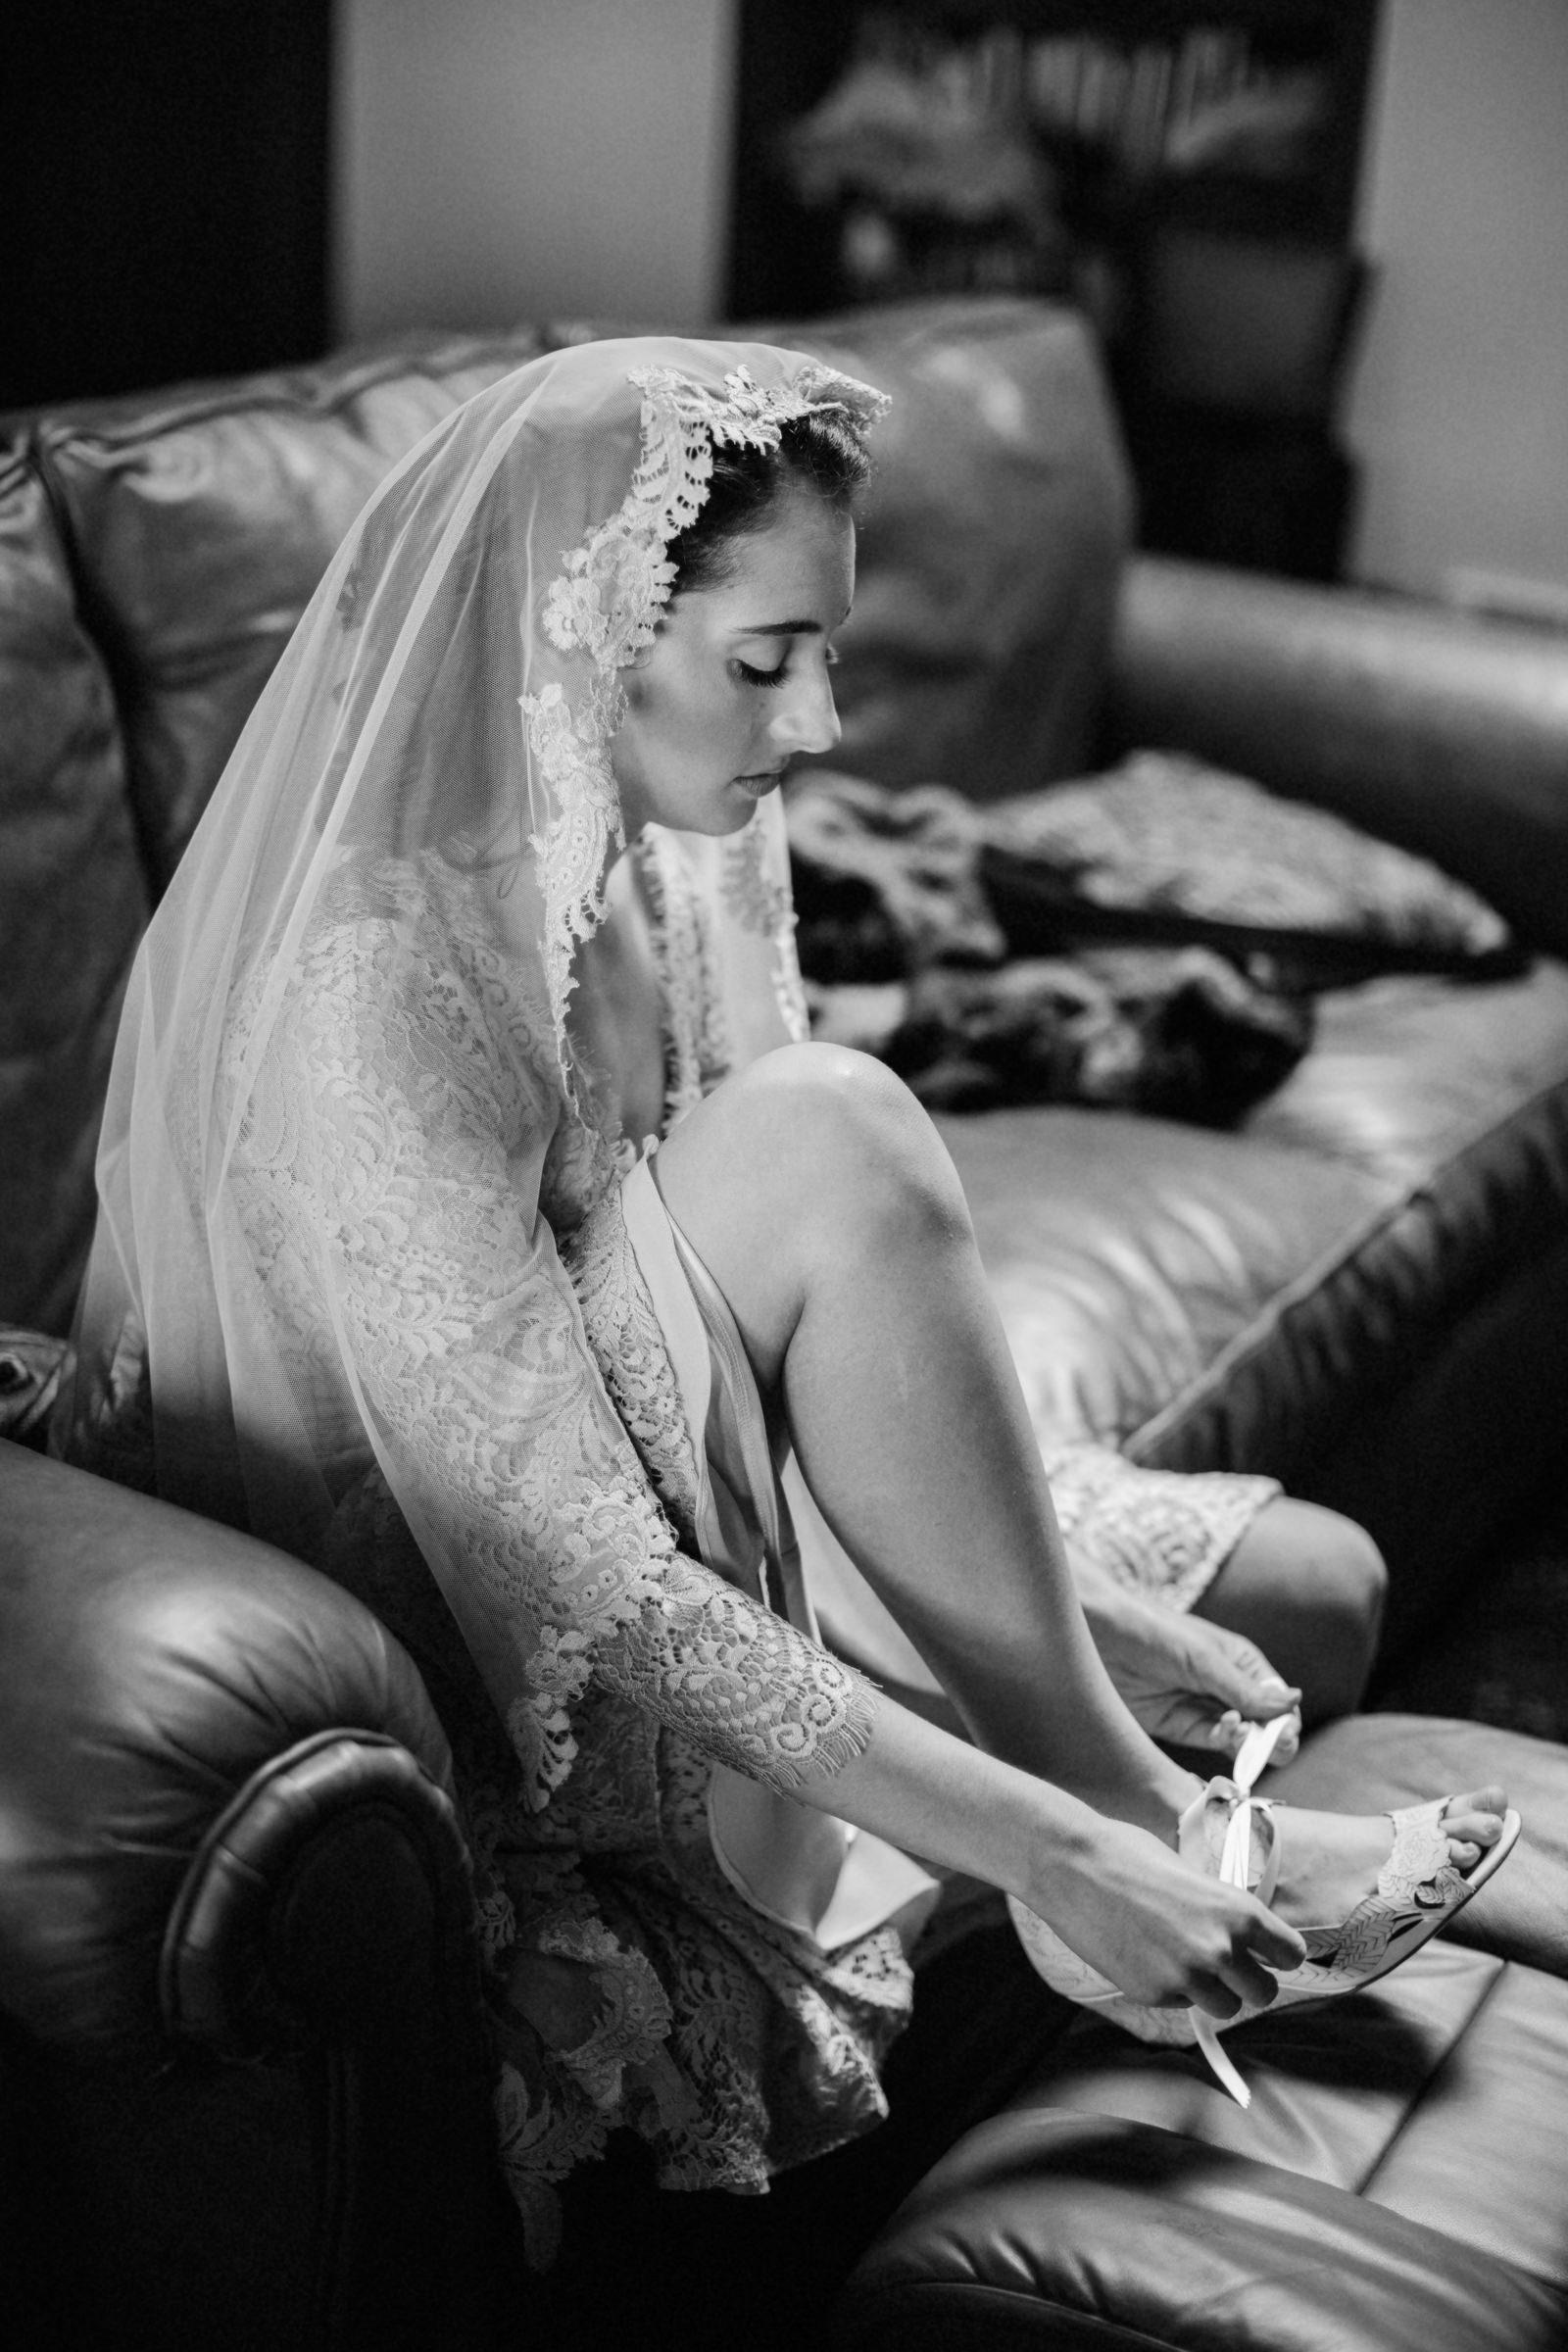 Seated veiled bride tying wedding shoes - photo by Jonas Seaman Photography